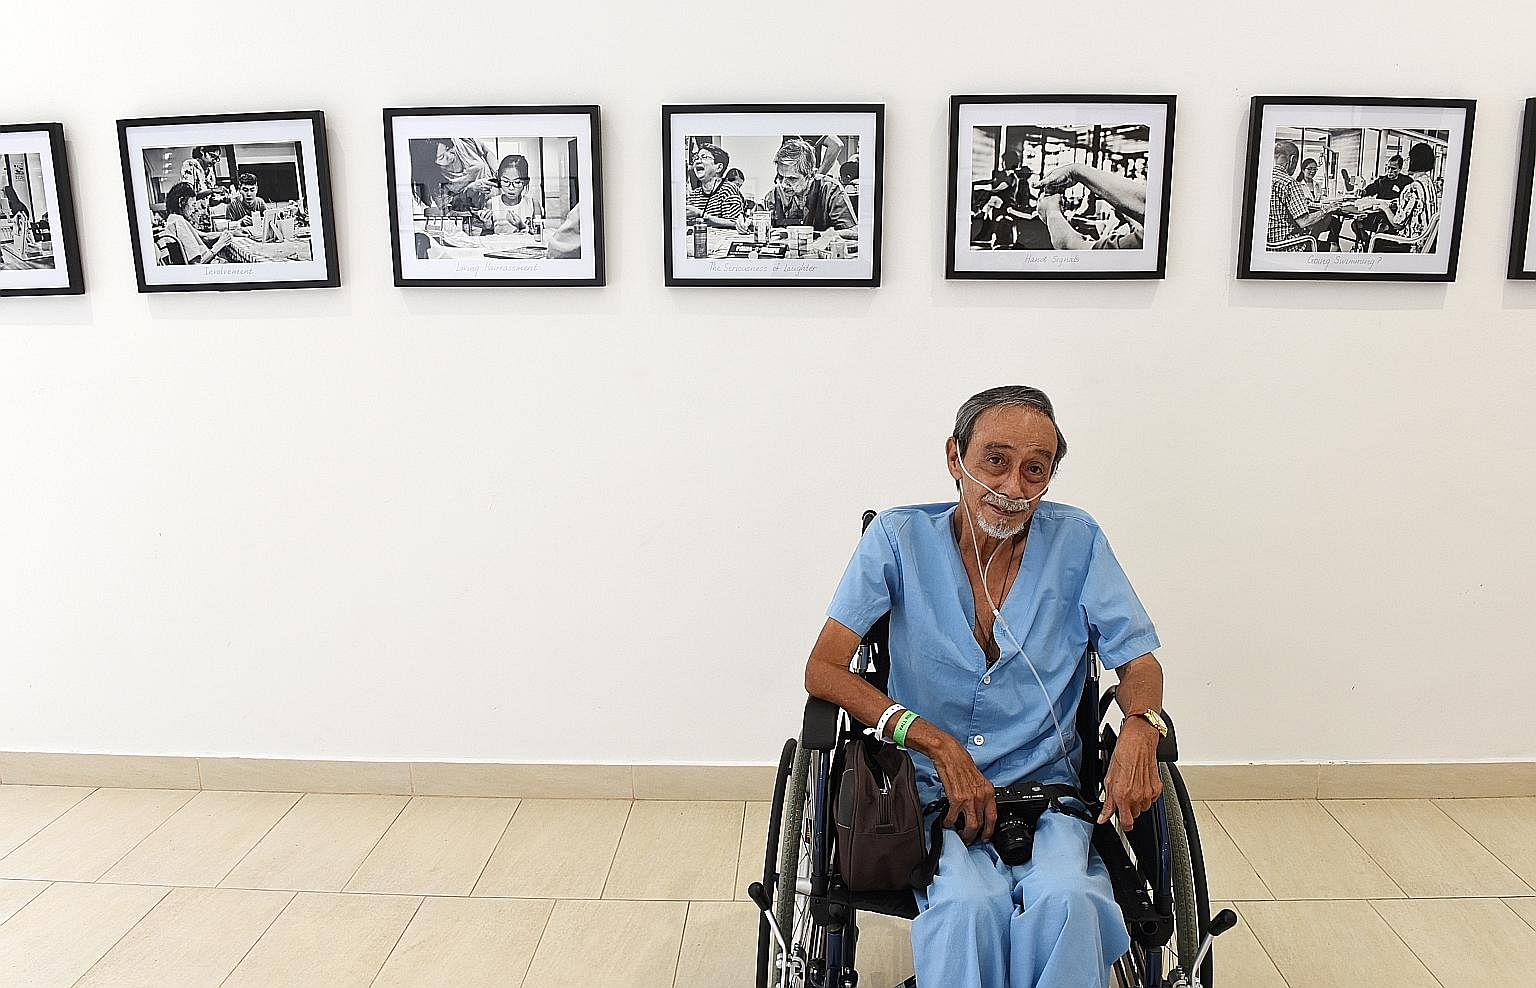 Mr Alan Lee, 69, suffers from end-stage chronic obstructive pulmonary disease, a progressive respiratory disease that causes breathing difficulties. He is spending his last days at the Assisi Hospice. His exhibition of 19 portraits of his fellow pati